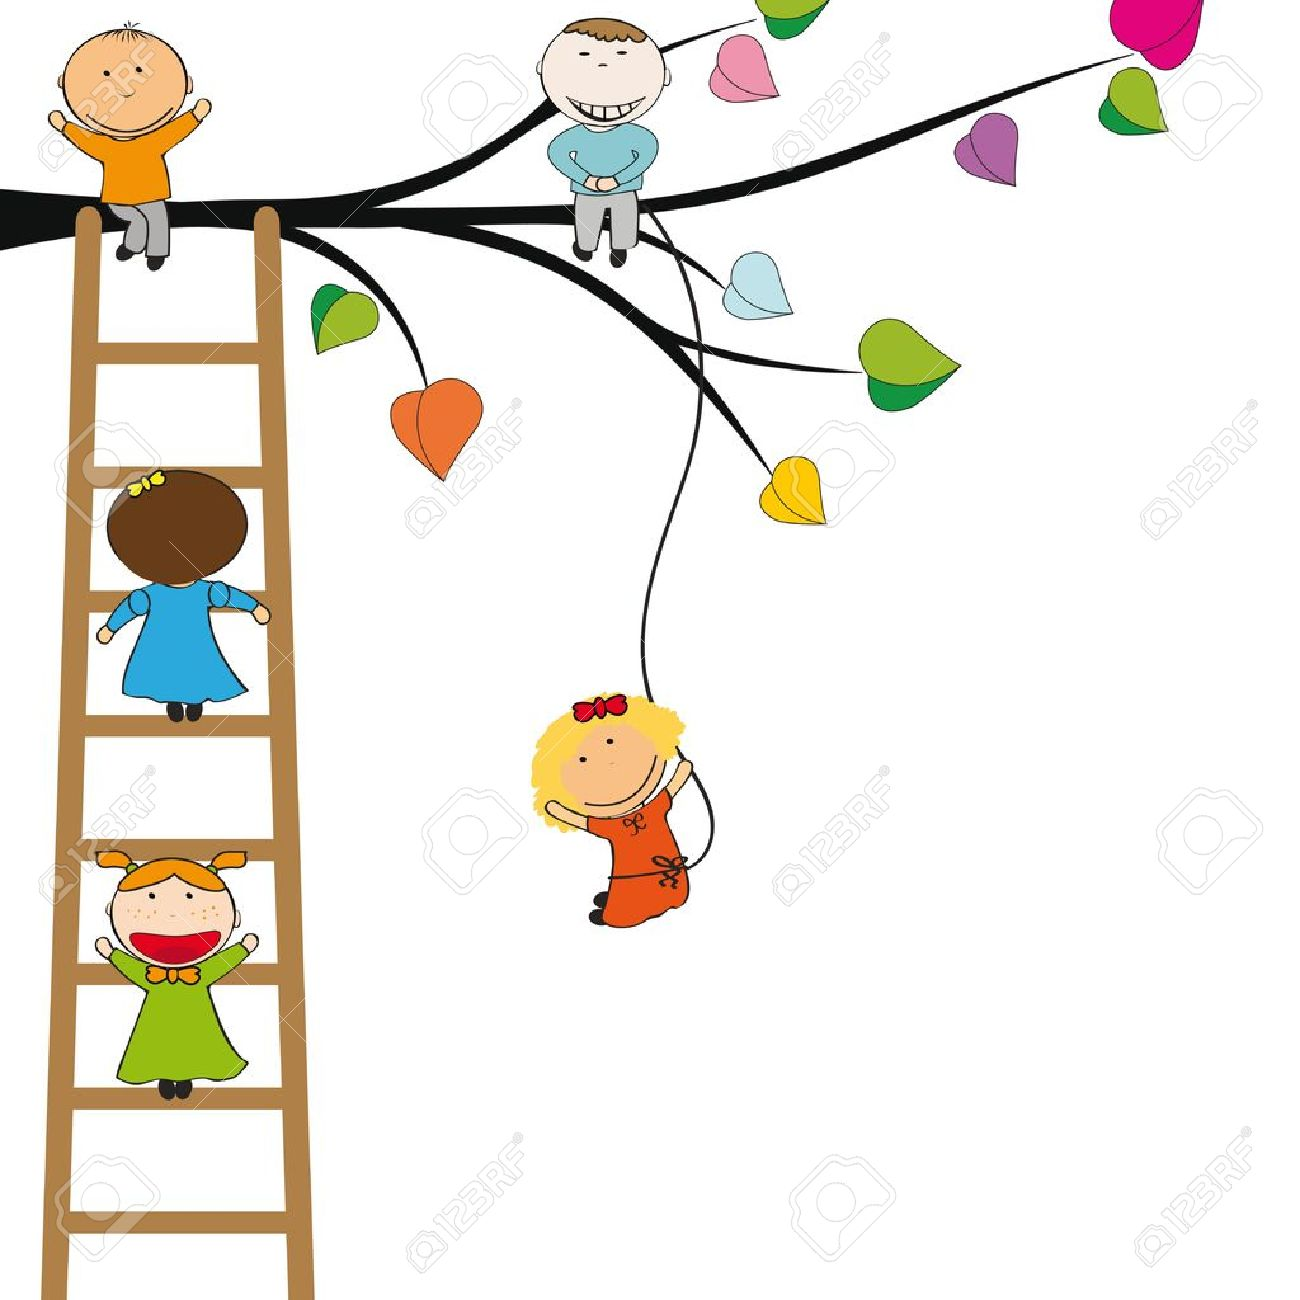 Small and happy kids on colorful tree - 13535807